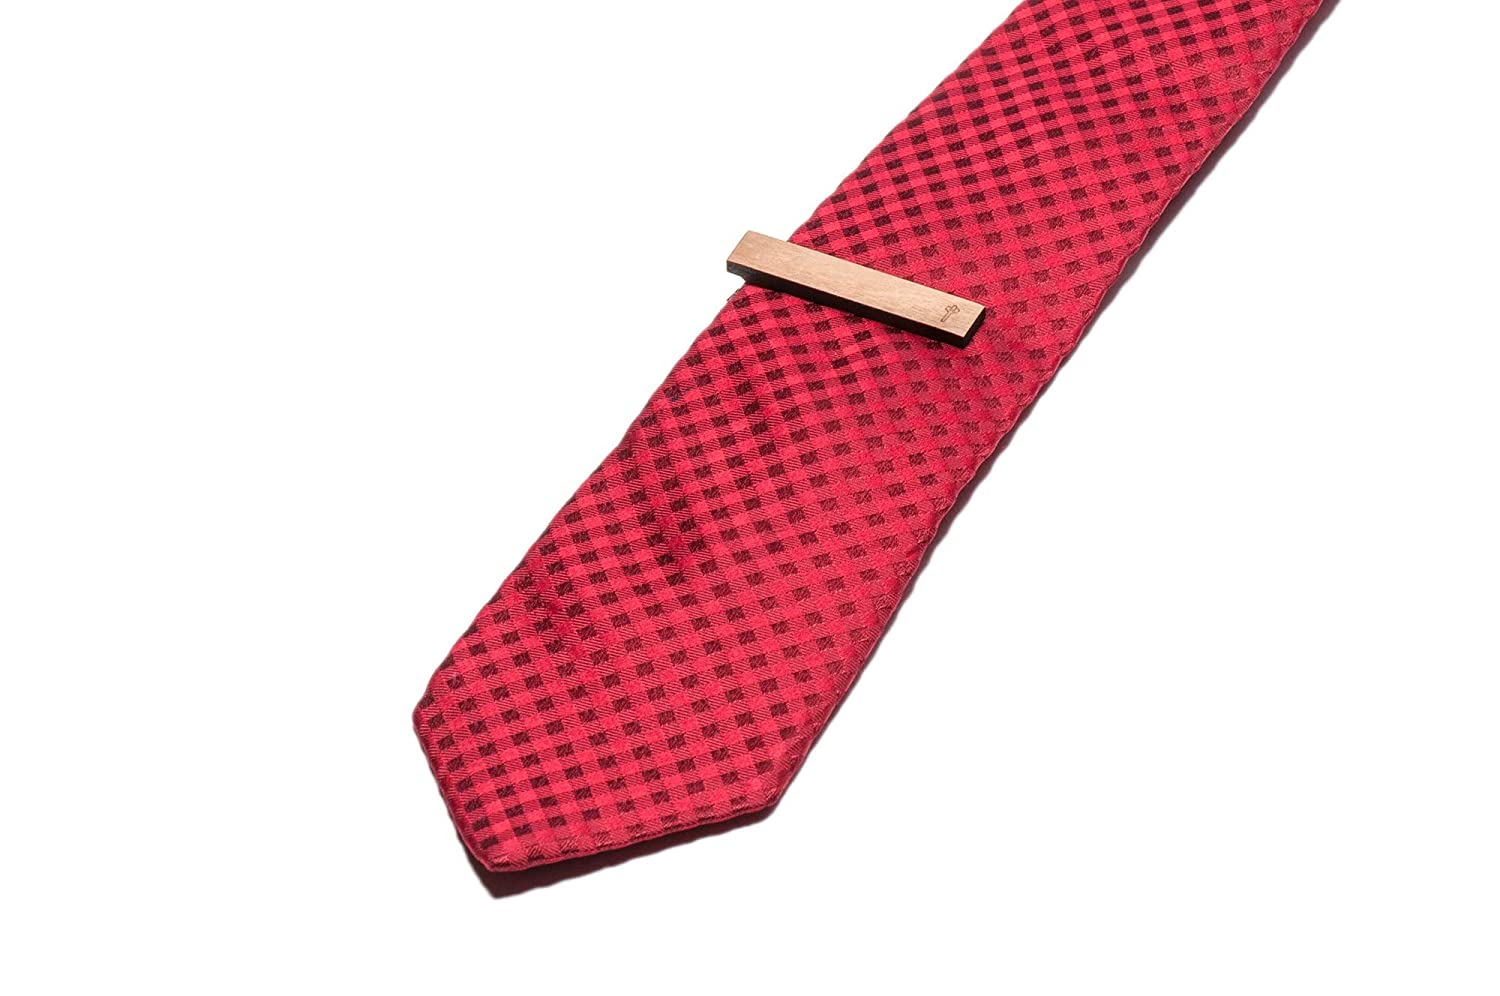 Cherry Wood Tie Bar Engraved in The USA Wooden Accessories Company Wooden Tie Clips with Laser Engraved Frog Foot Design